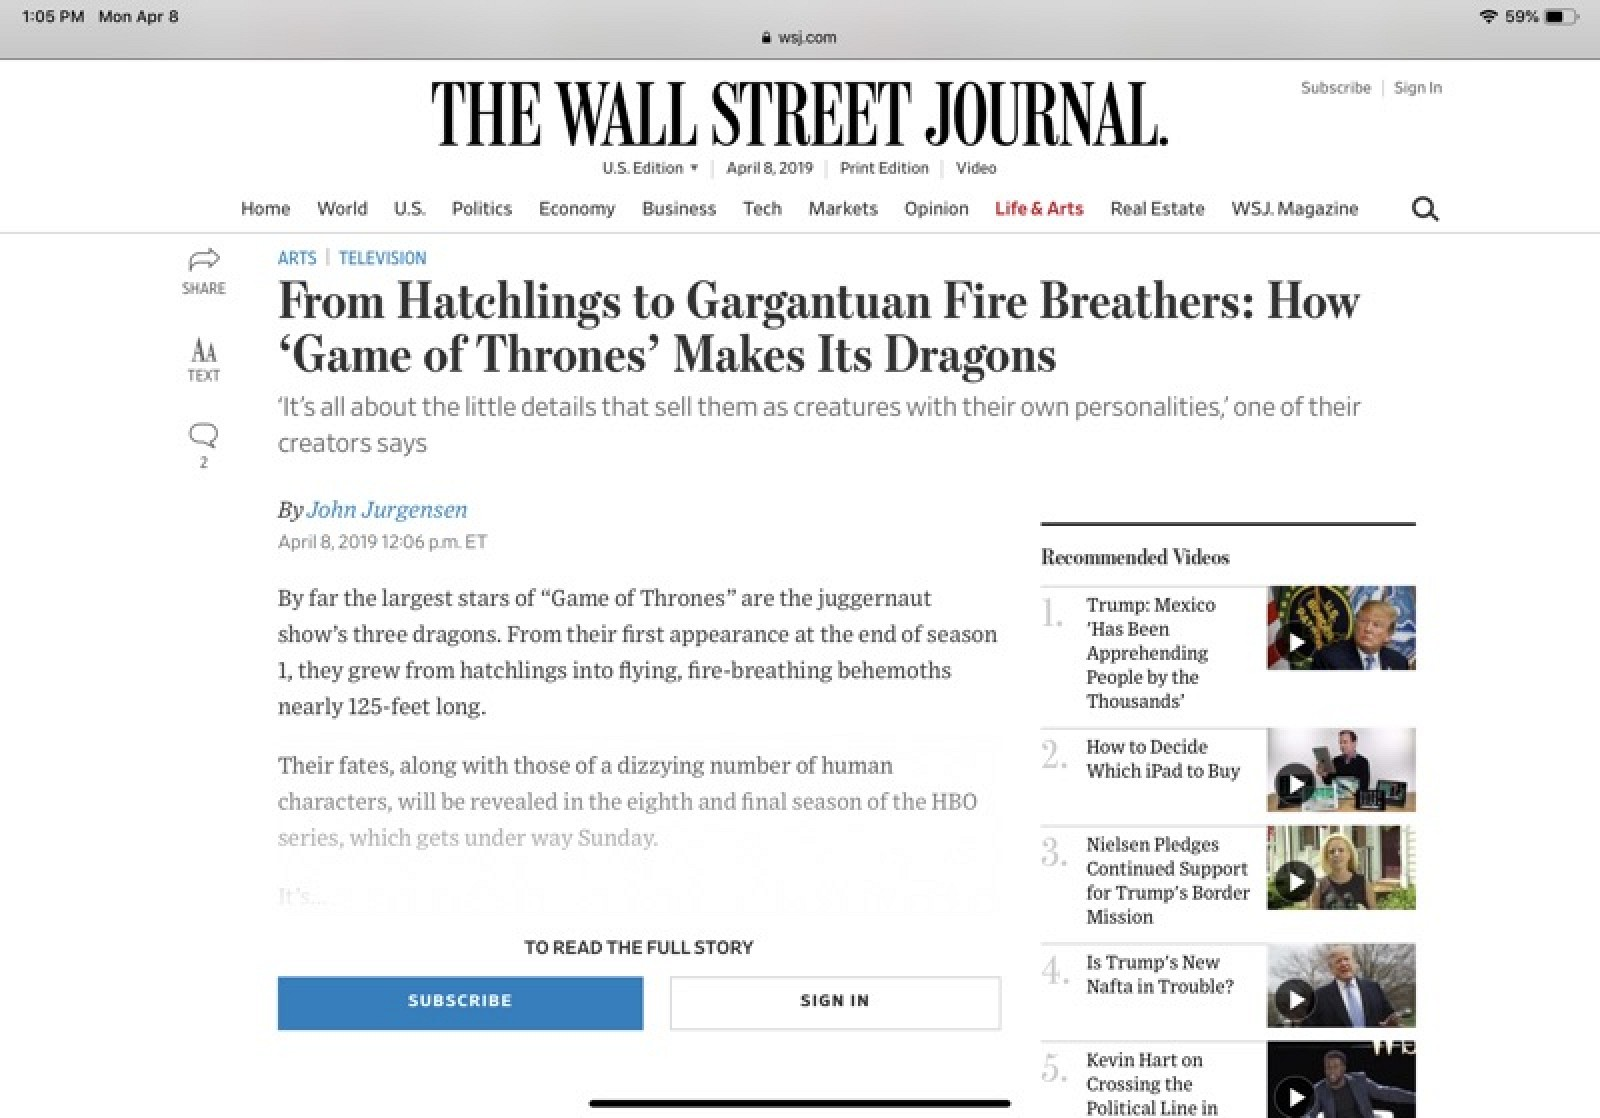 How to Read Any Paywalled Article From The Wall Street Journal Using